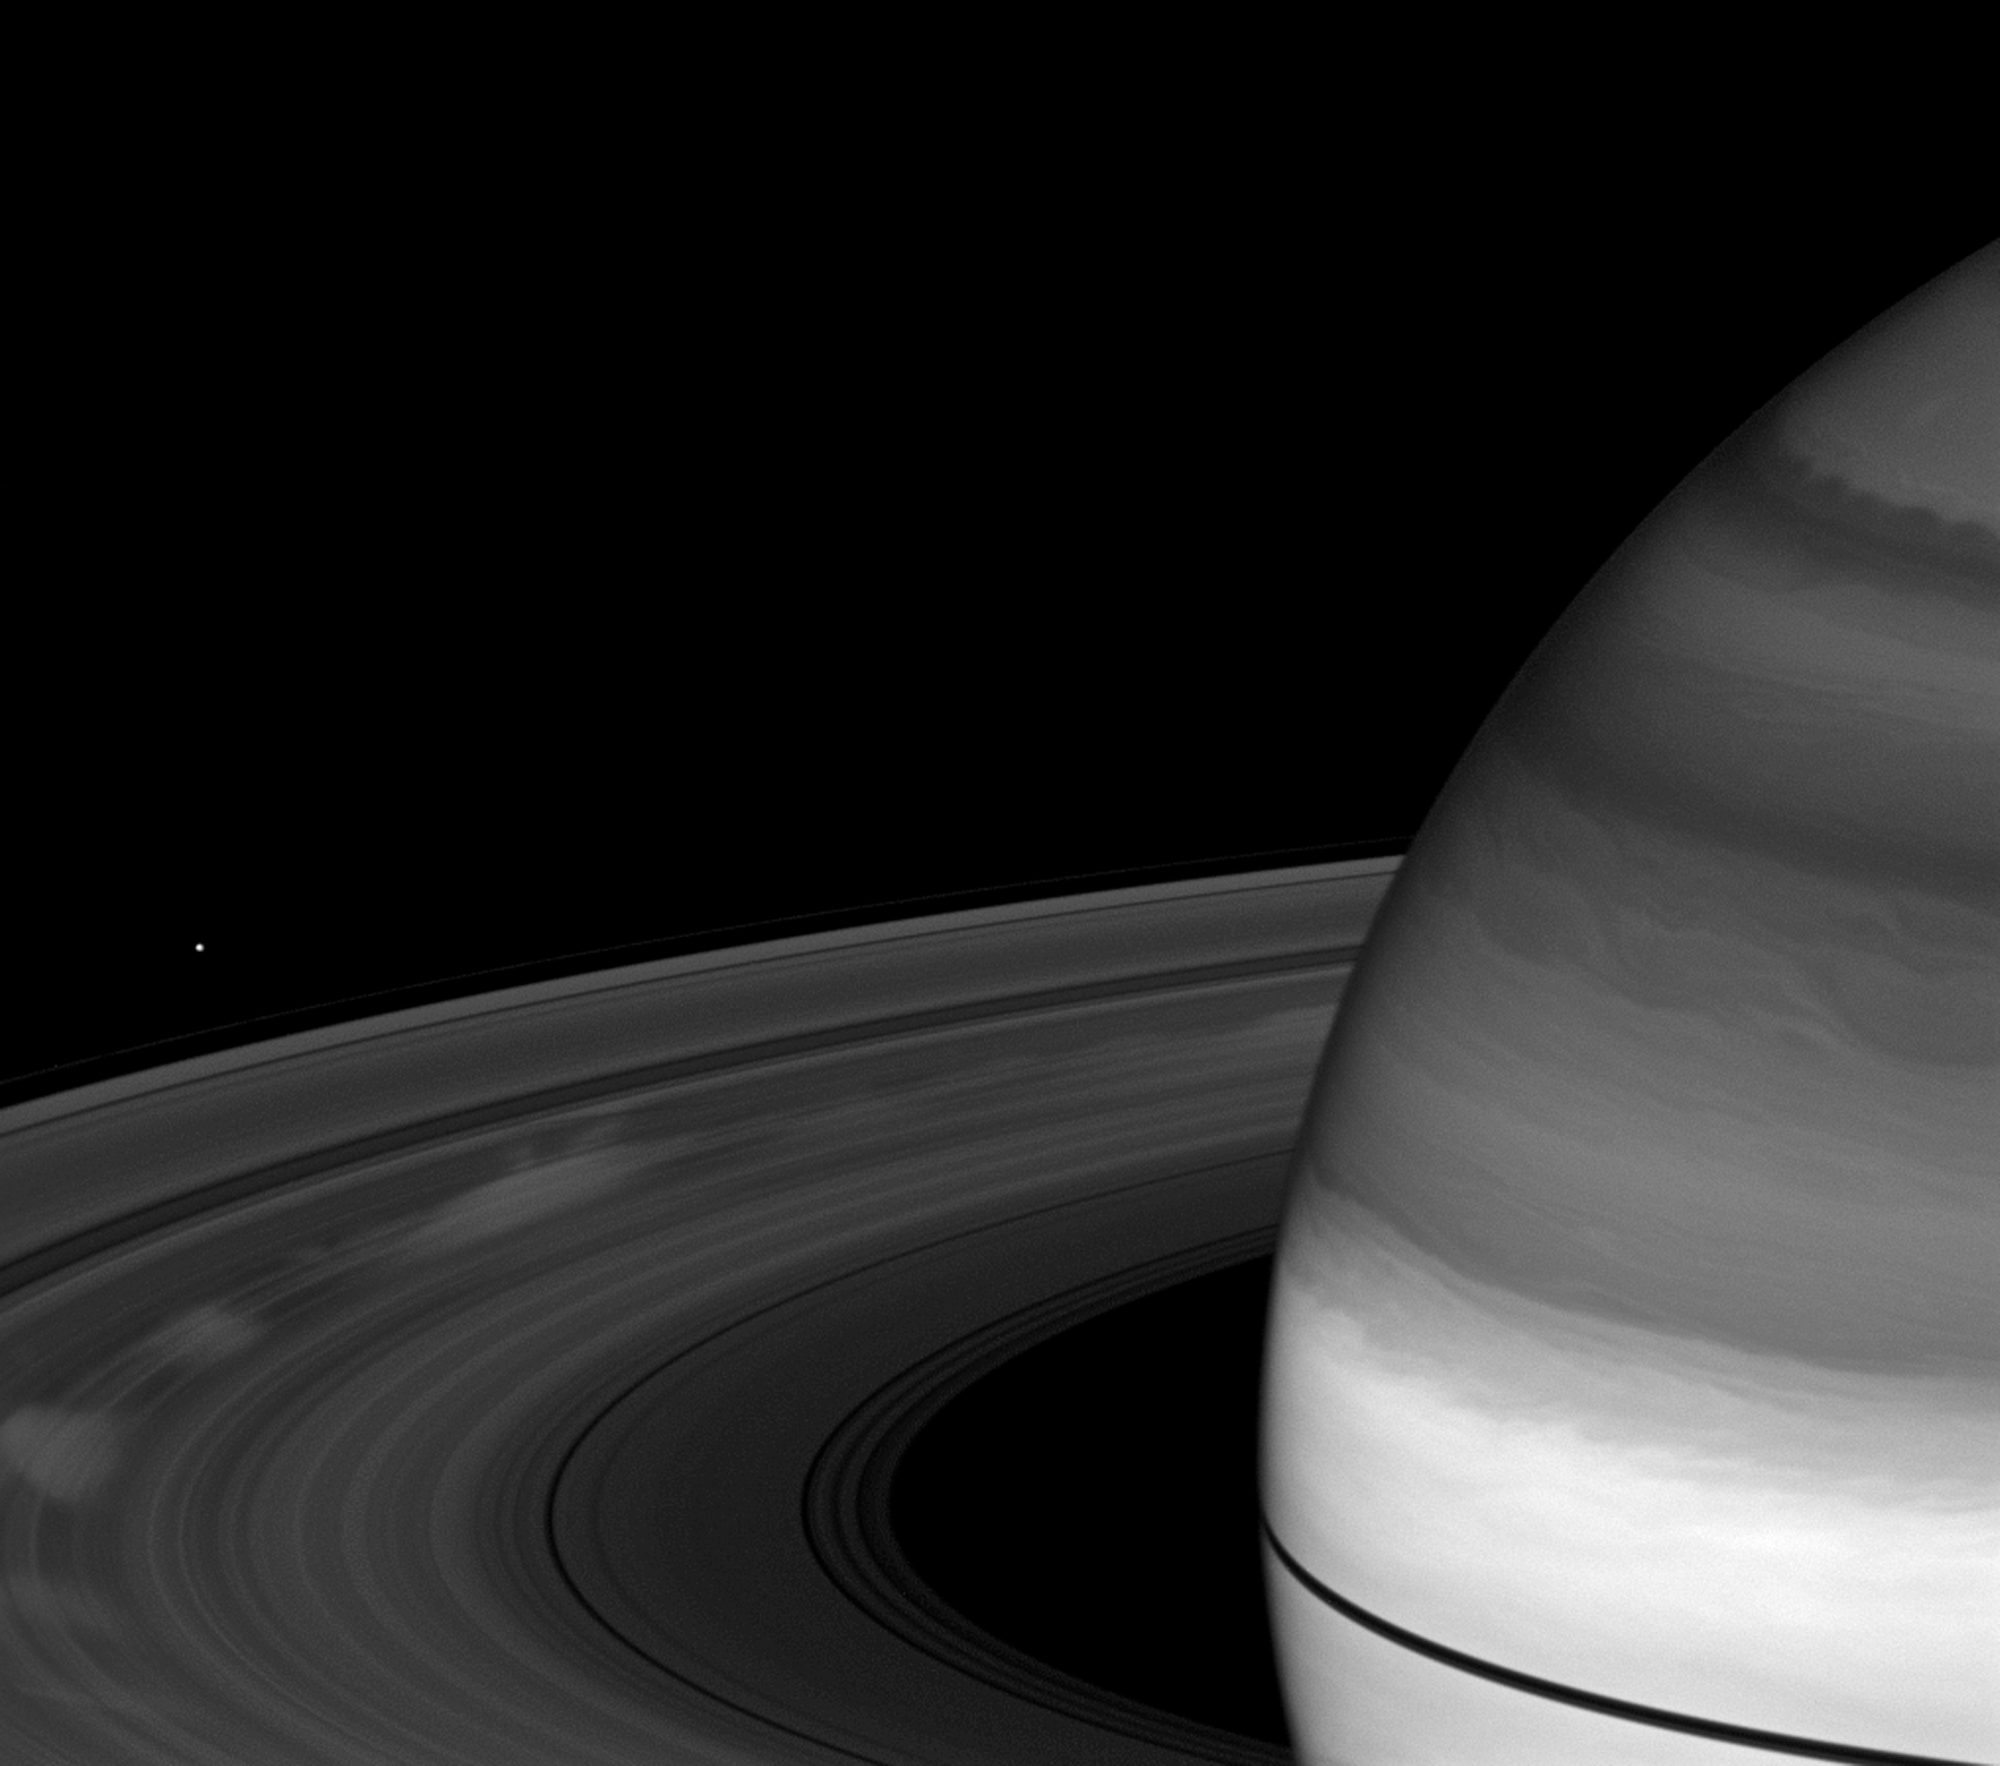 Spokes, those ghostly radial markings on Saturn's B ring